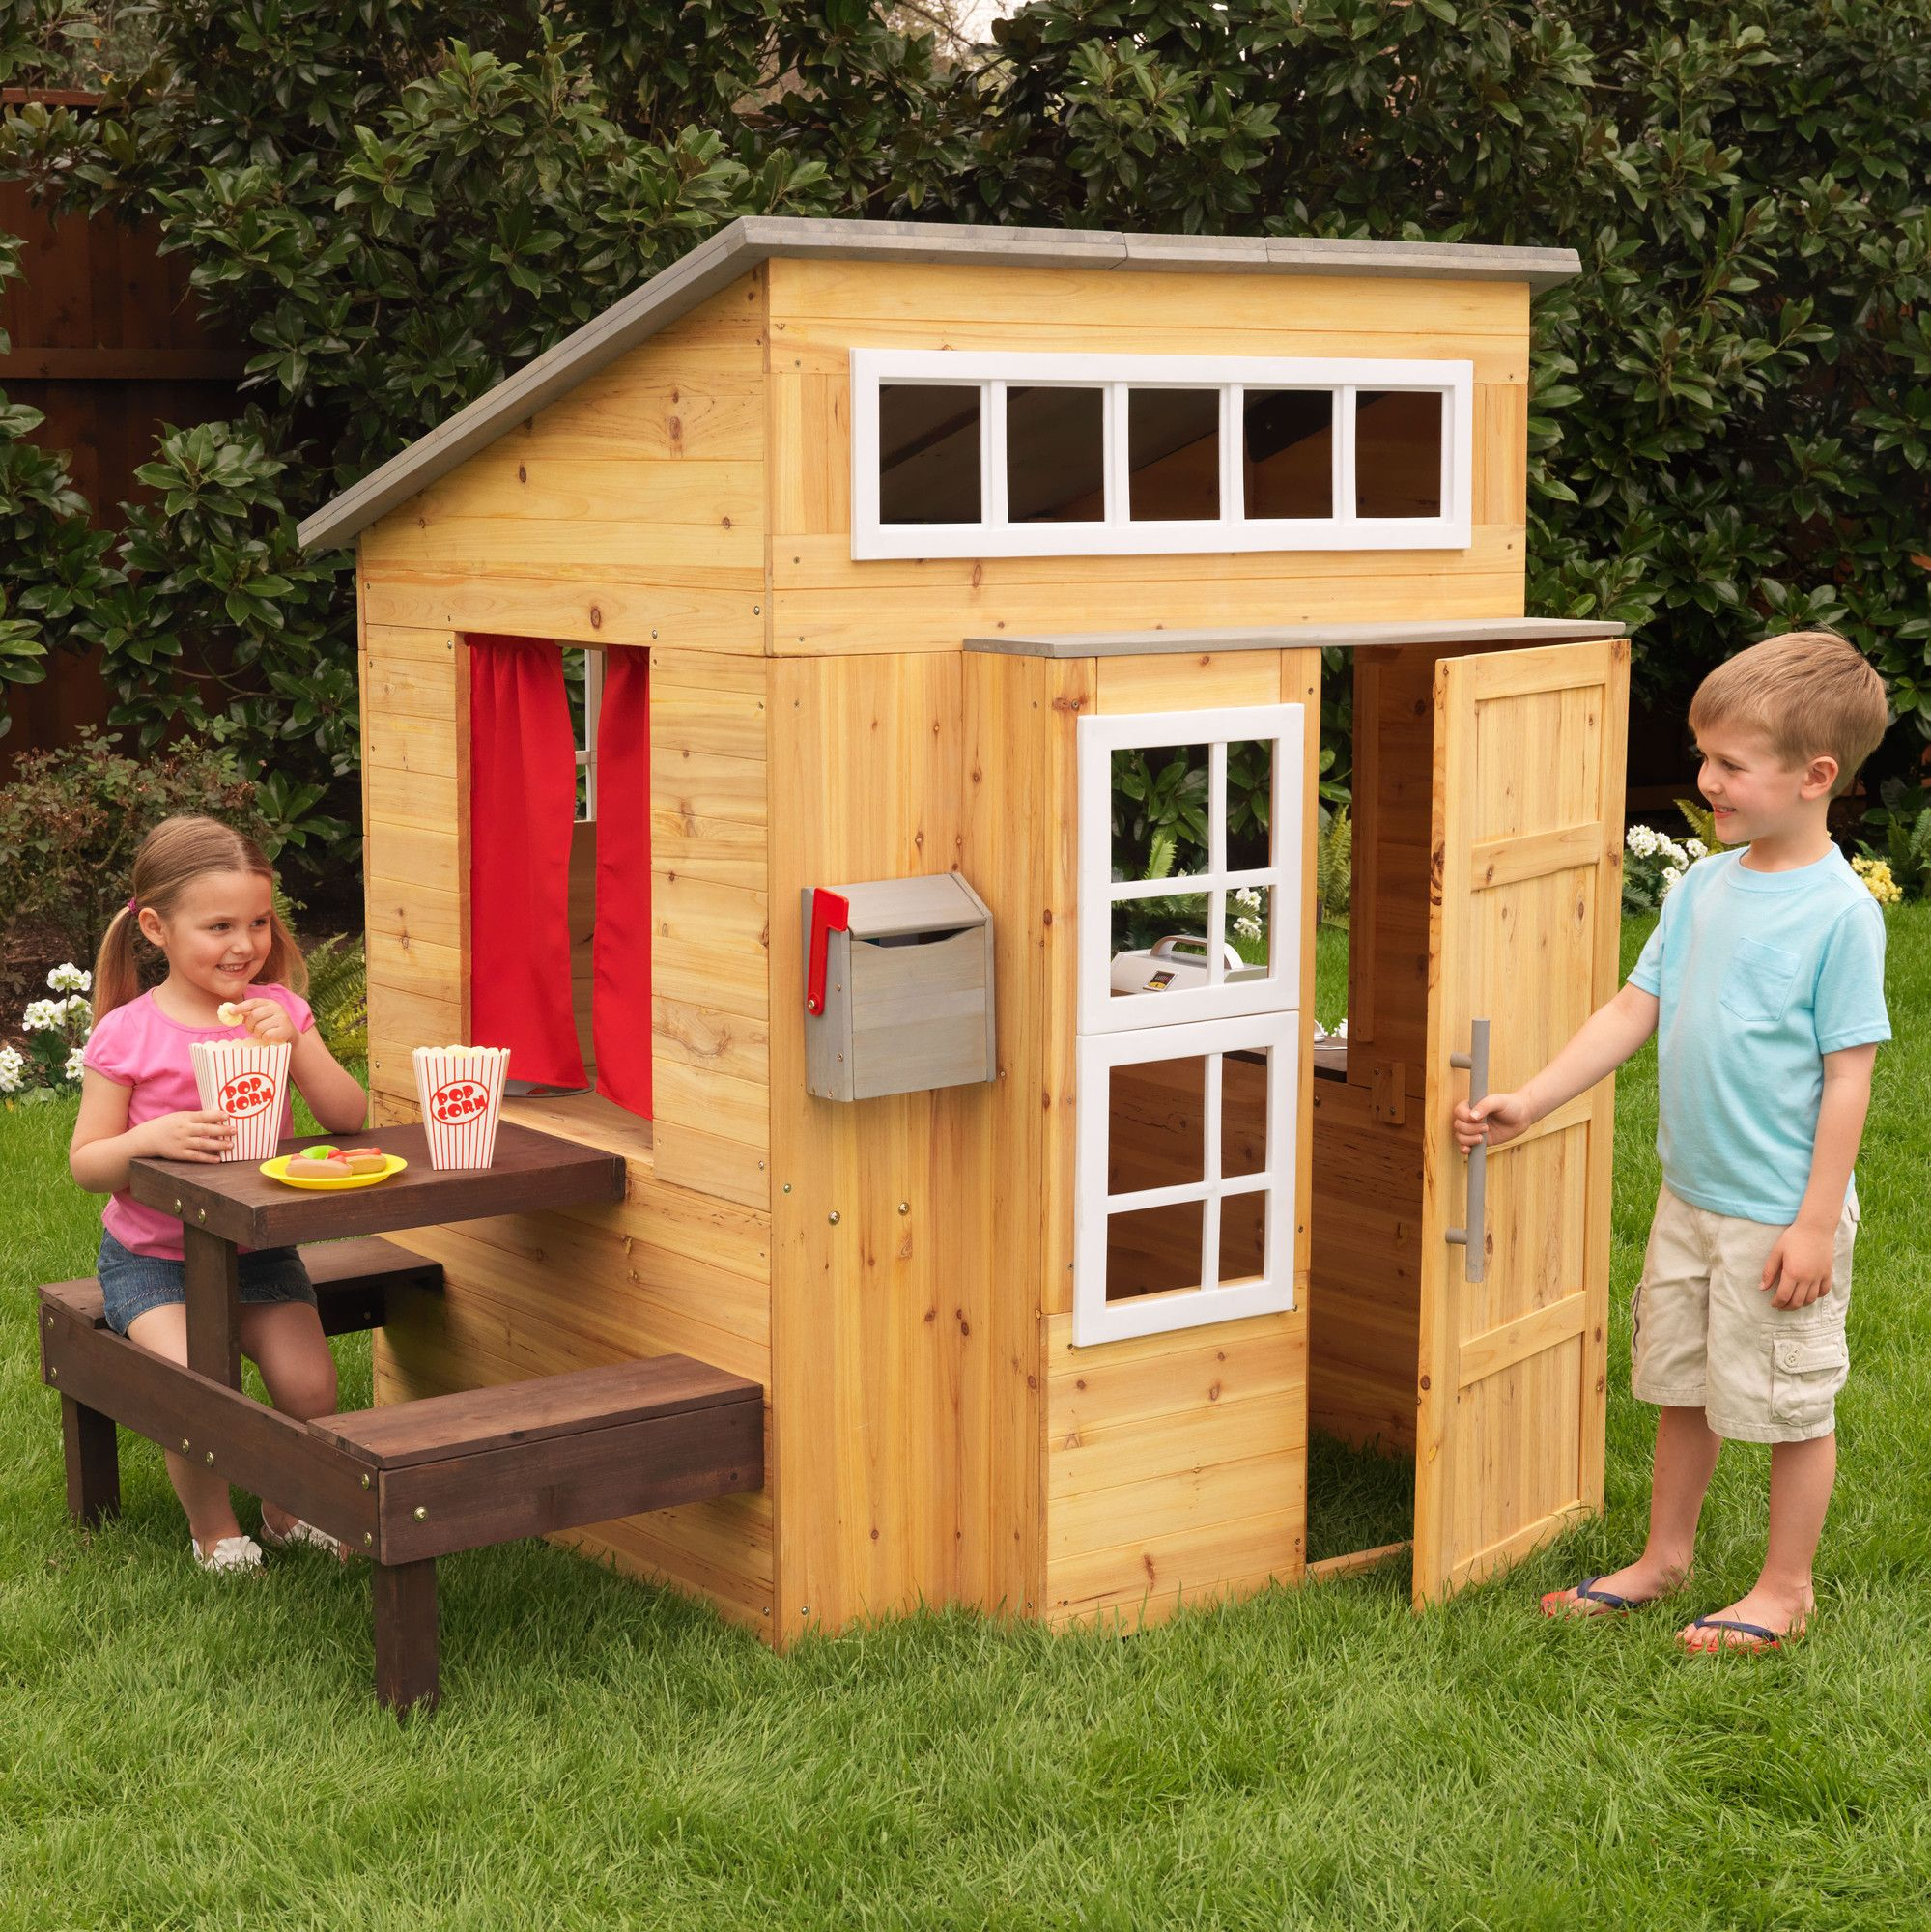 KidKraft Modern Outdoor Playhouse & Reviews   Wayfair -- with a few modifications this could be fantastic.